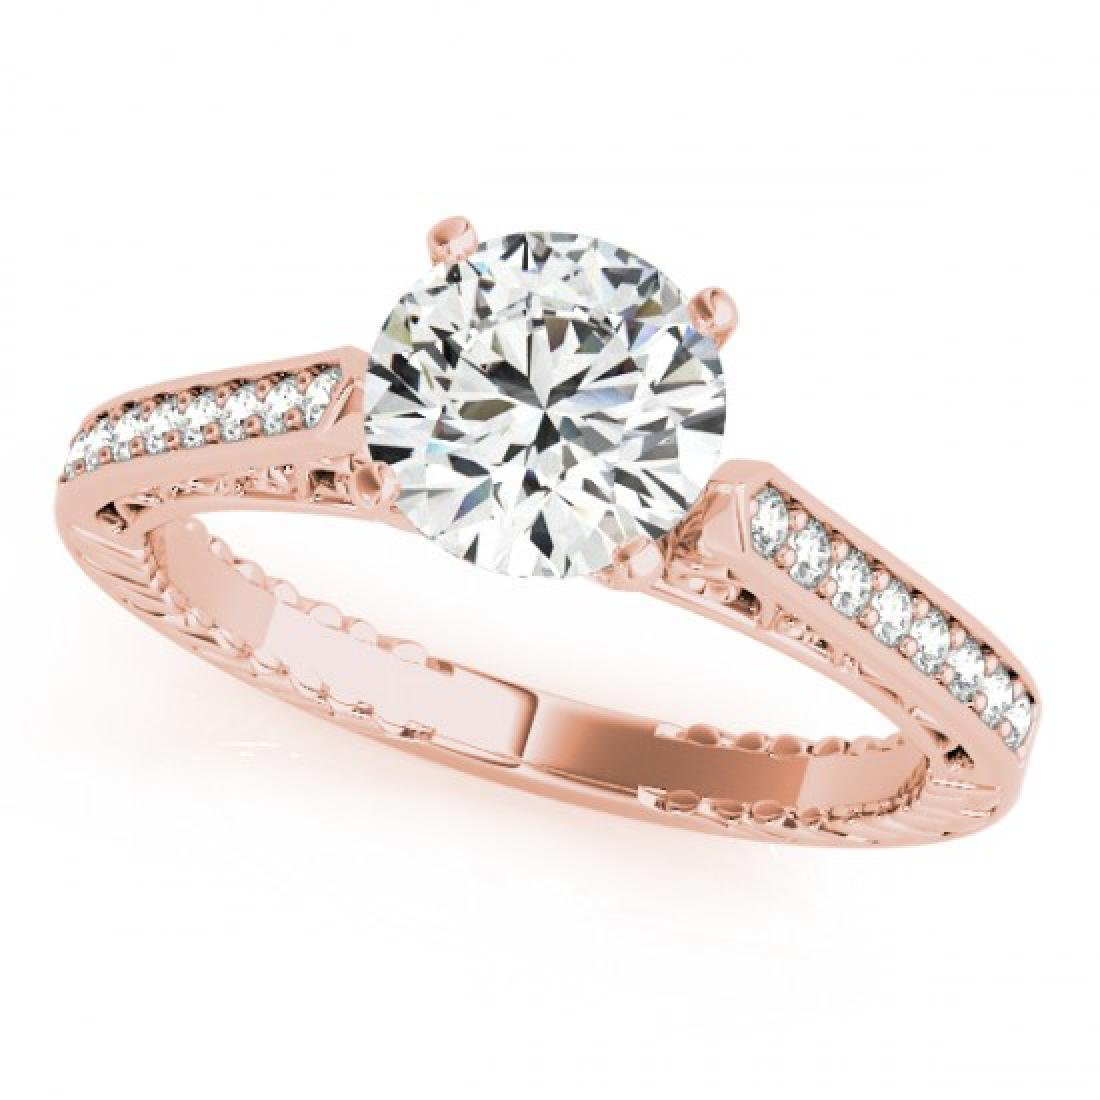 0.4 CTW Certified VS/SI Diamond Solitaire Antique Ring